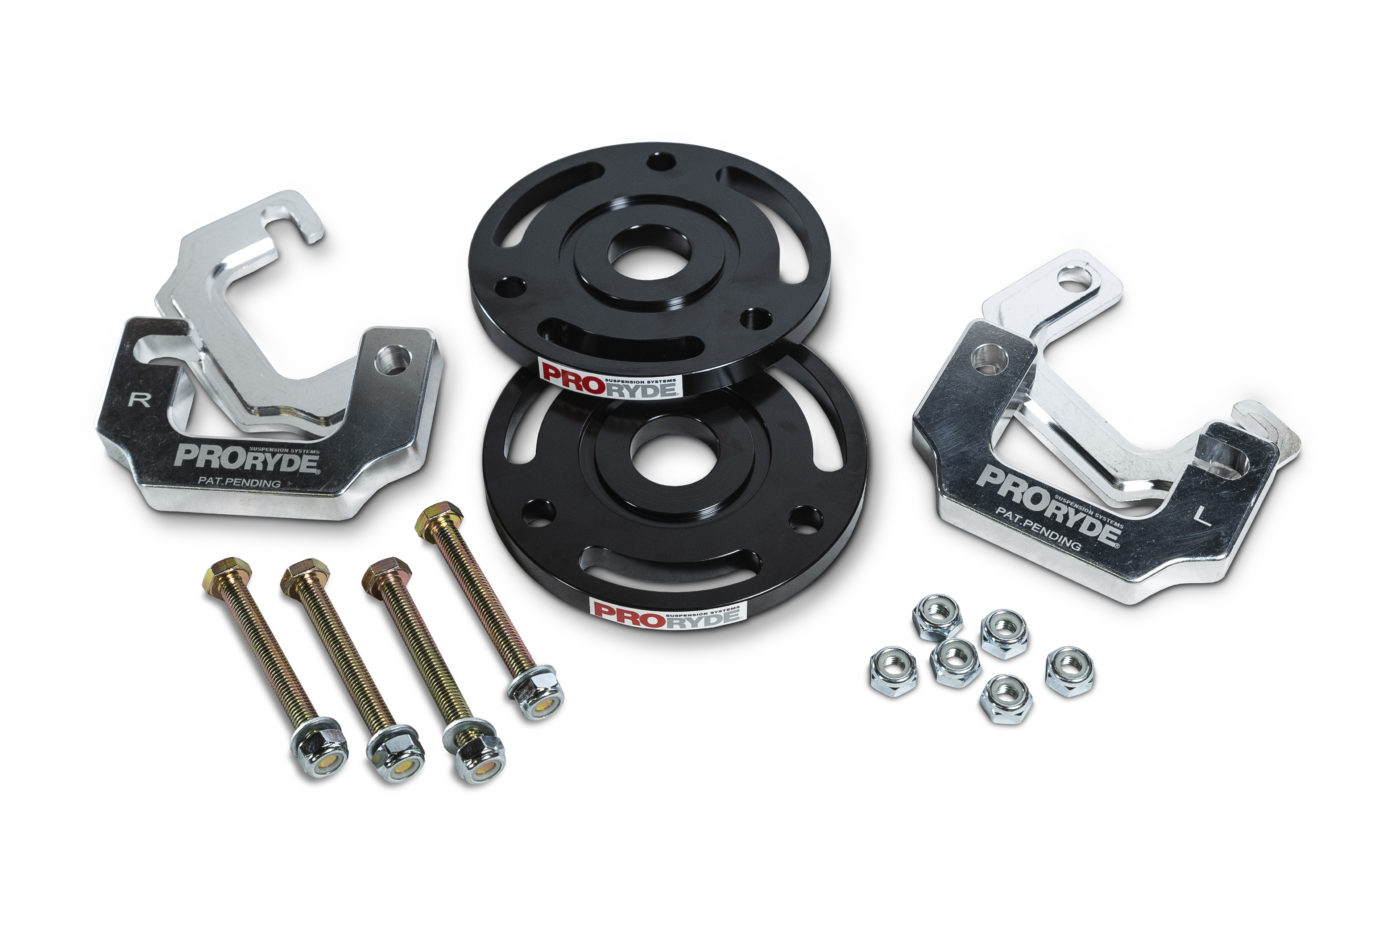 SILVERADO SIERRA LD 1500 (T1XX) ADJUSTABLE FRONT LIFT LEVELING KIT